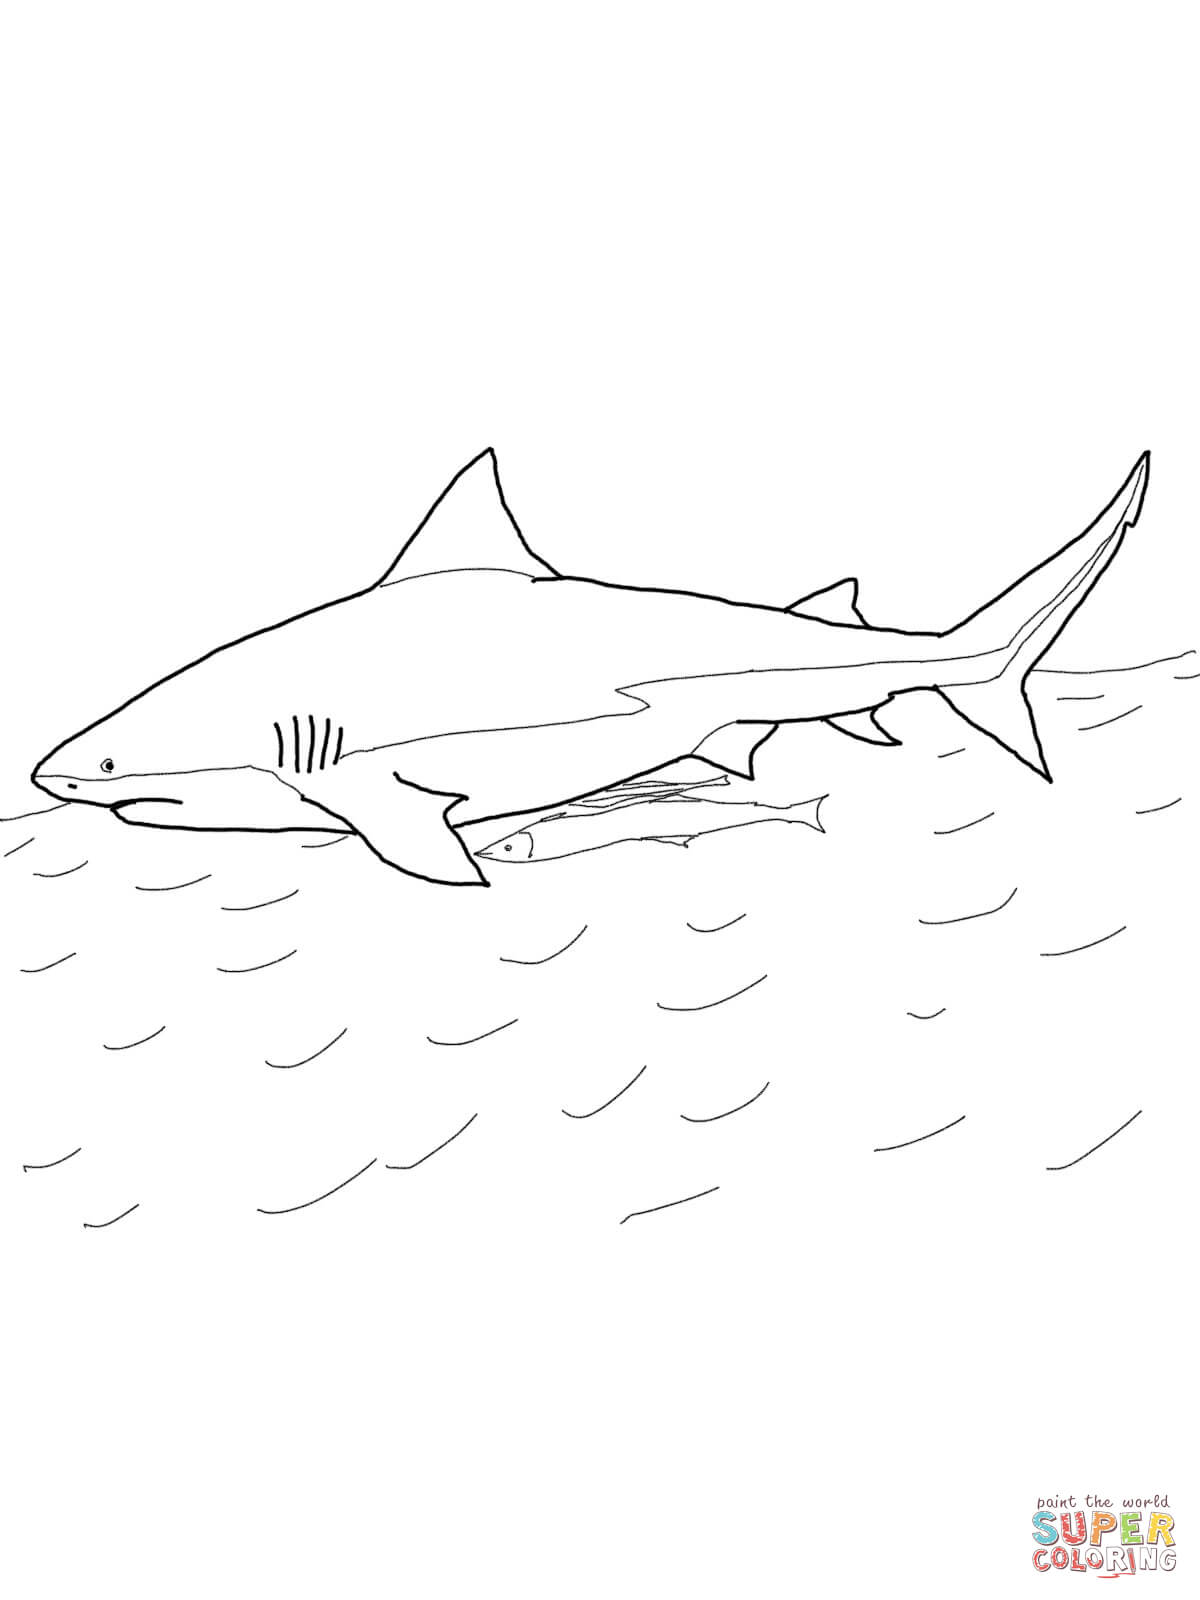 Megalodon Shark Drawing At Getdrawings